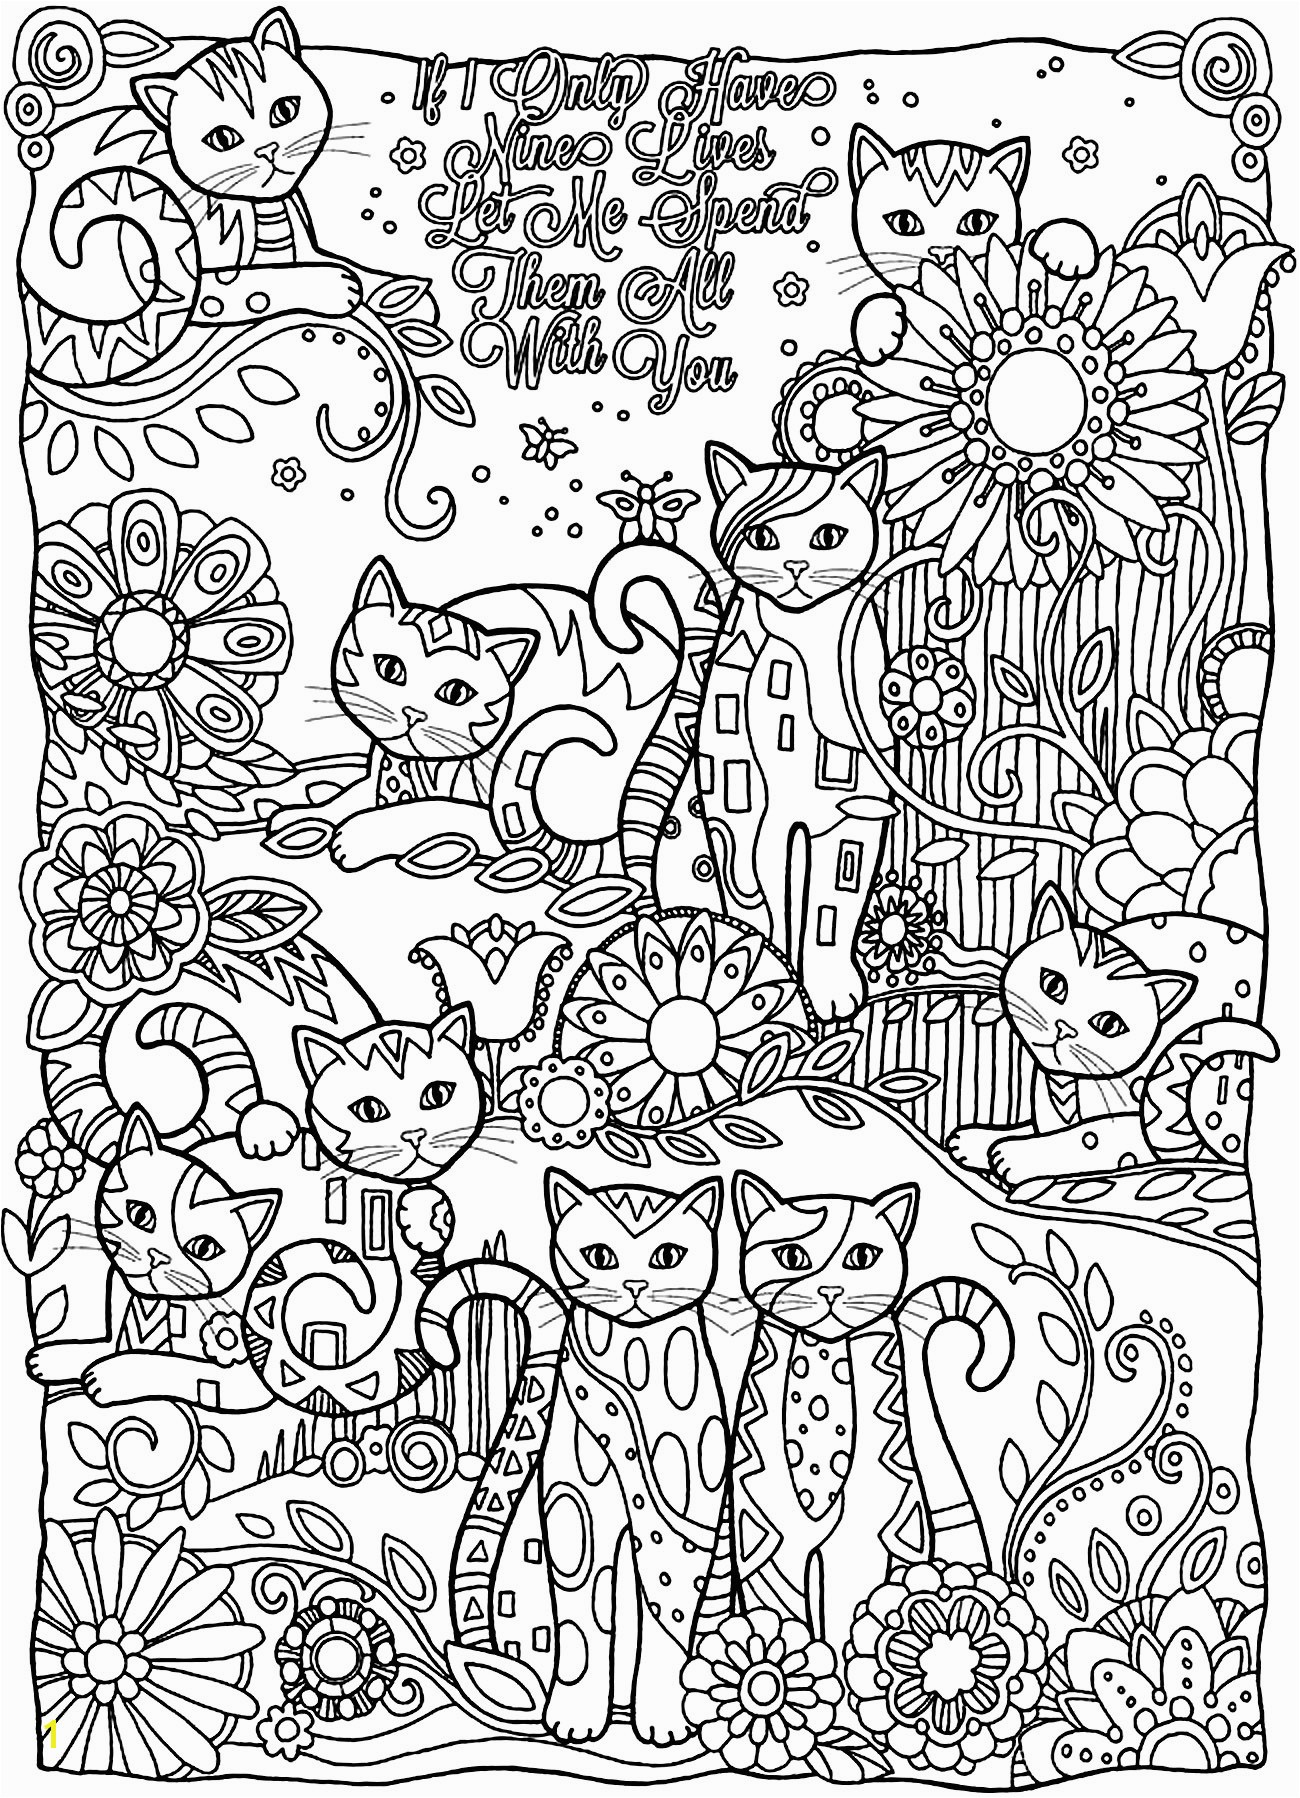 Neverending Story Coloring Pages Lovely Awesome Od Dog Coloring Pages Free Colouring Pages – Fun Time